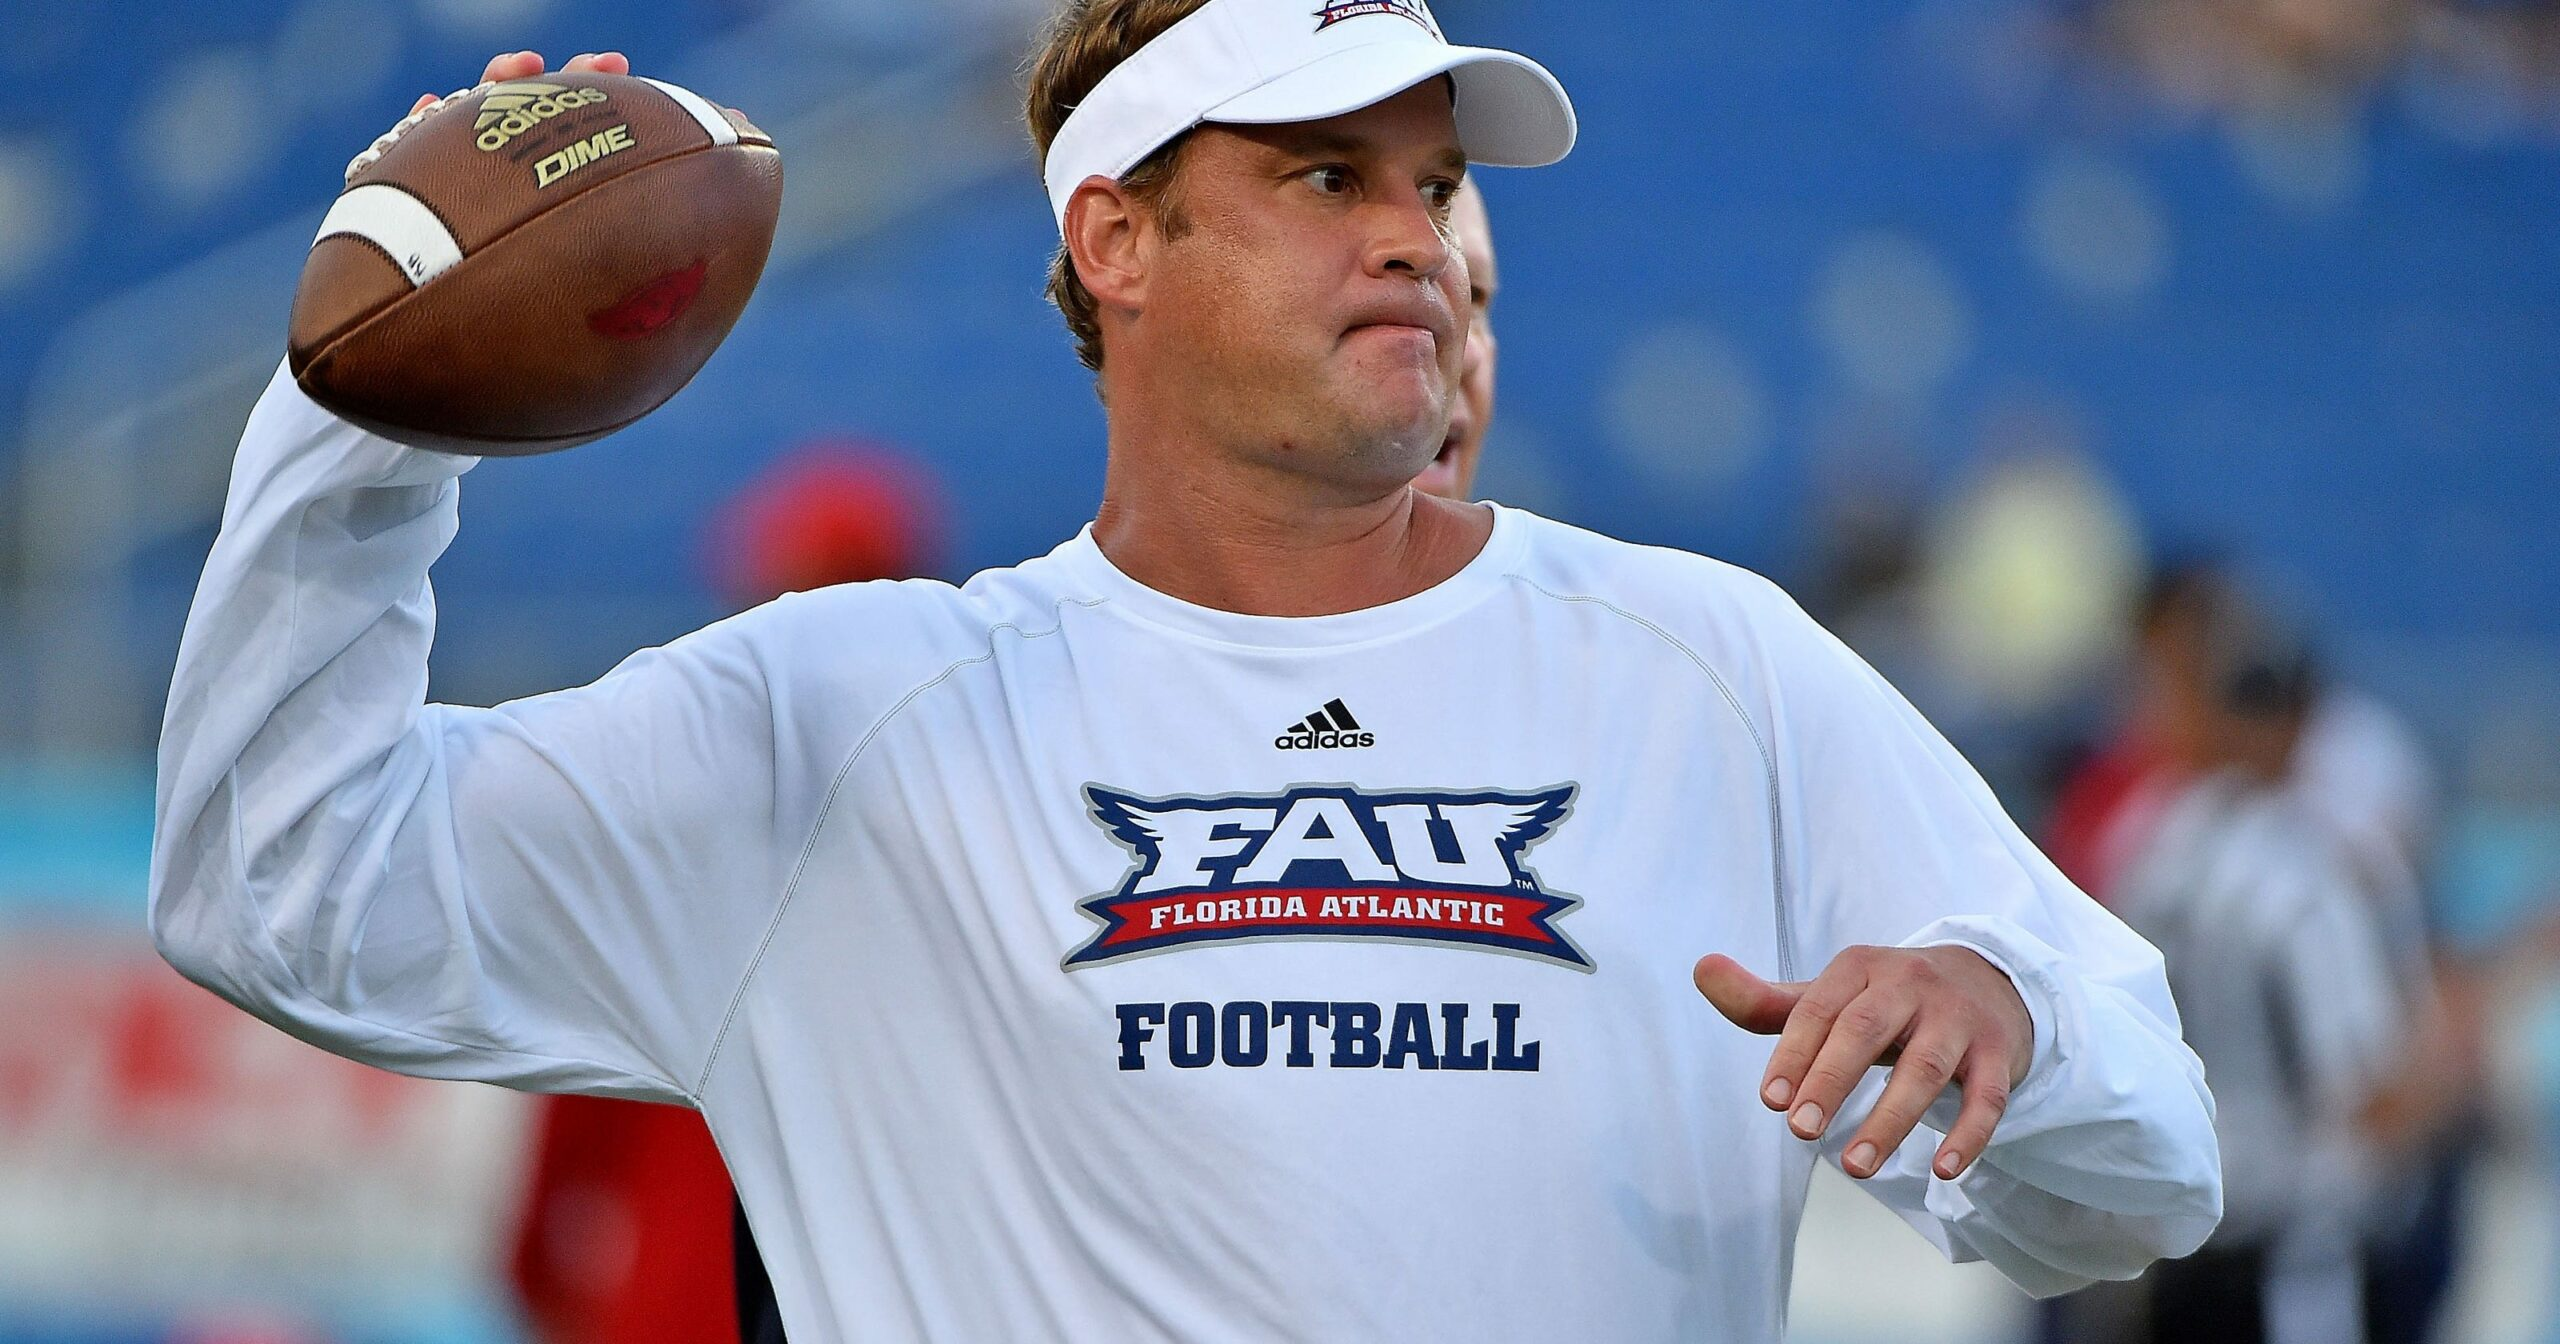 Lane Kiffin to Take Head Coaching Job at Ole Miss